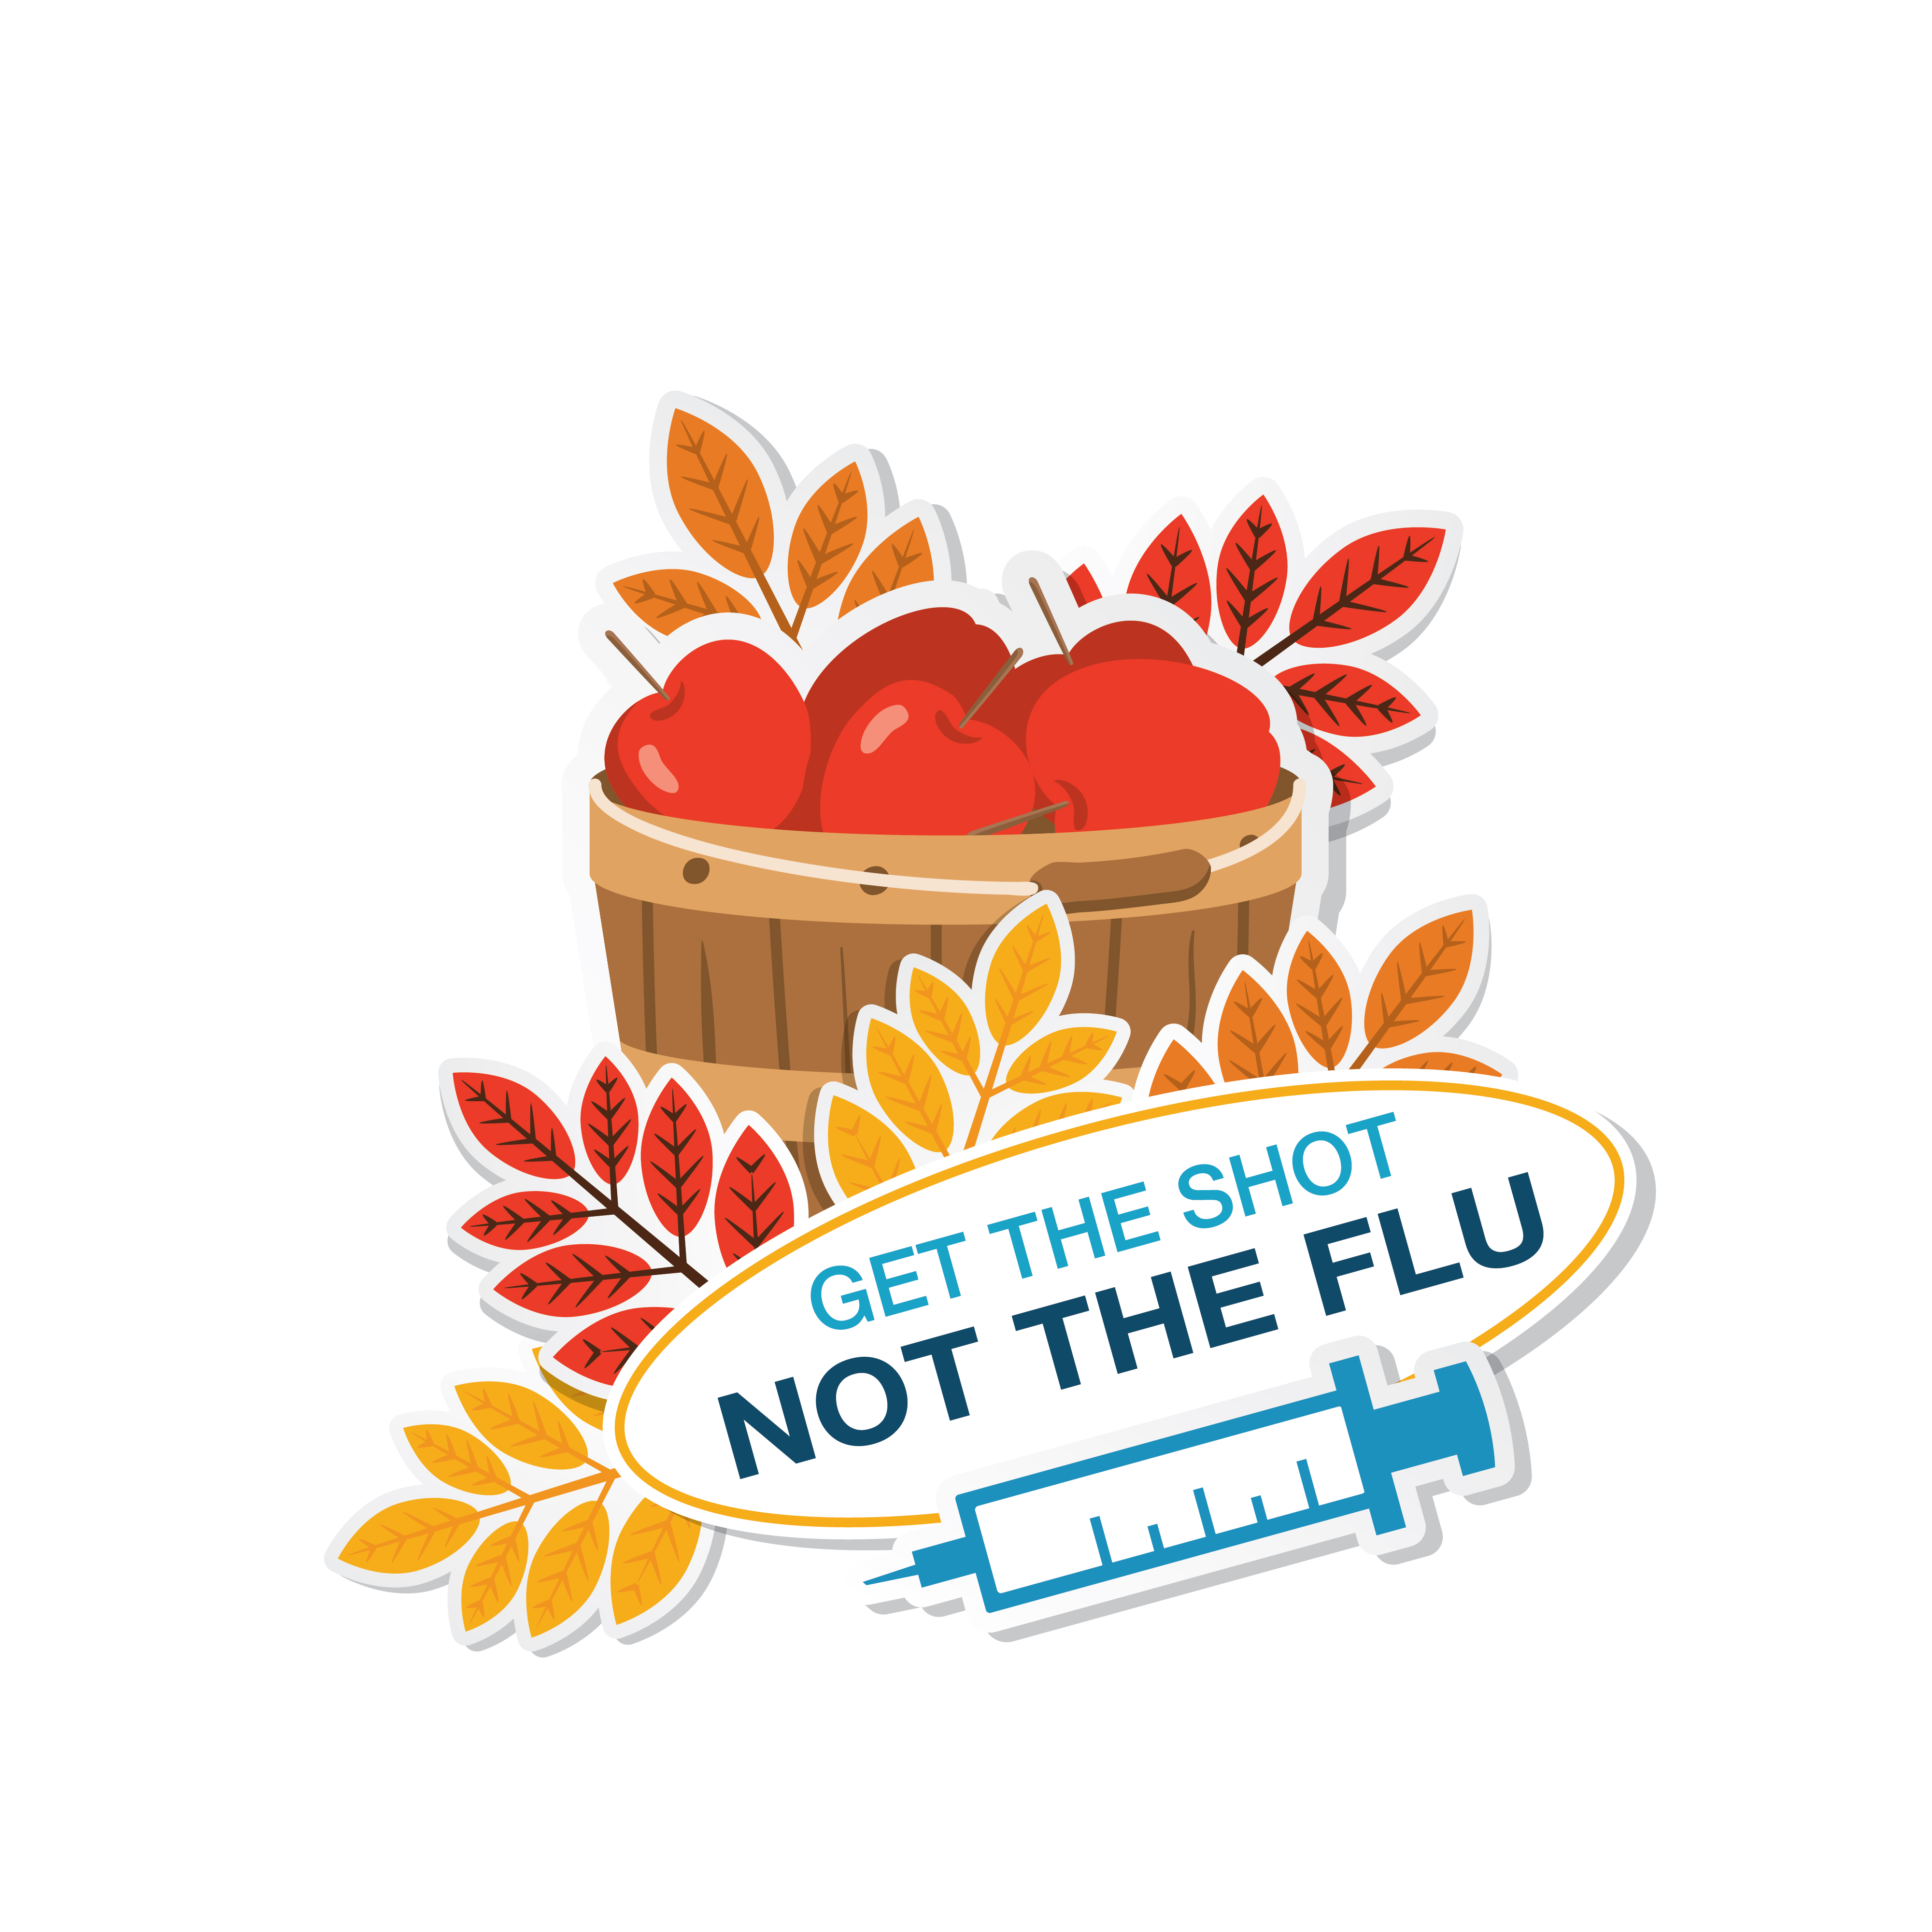 Flu illustration